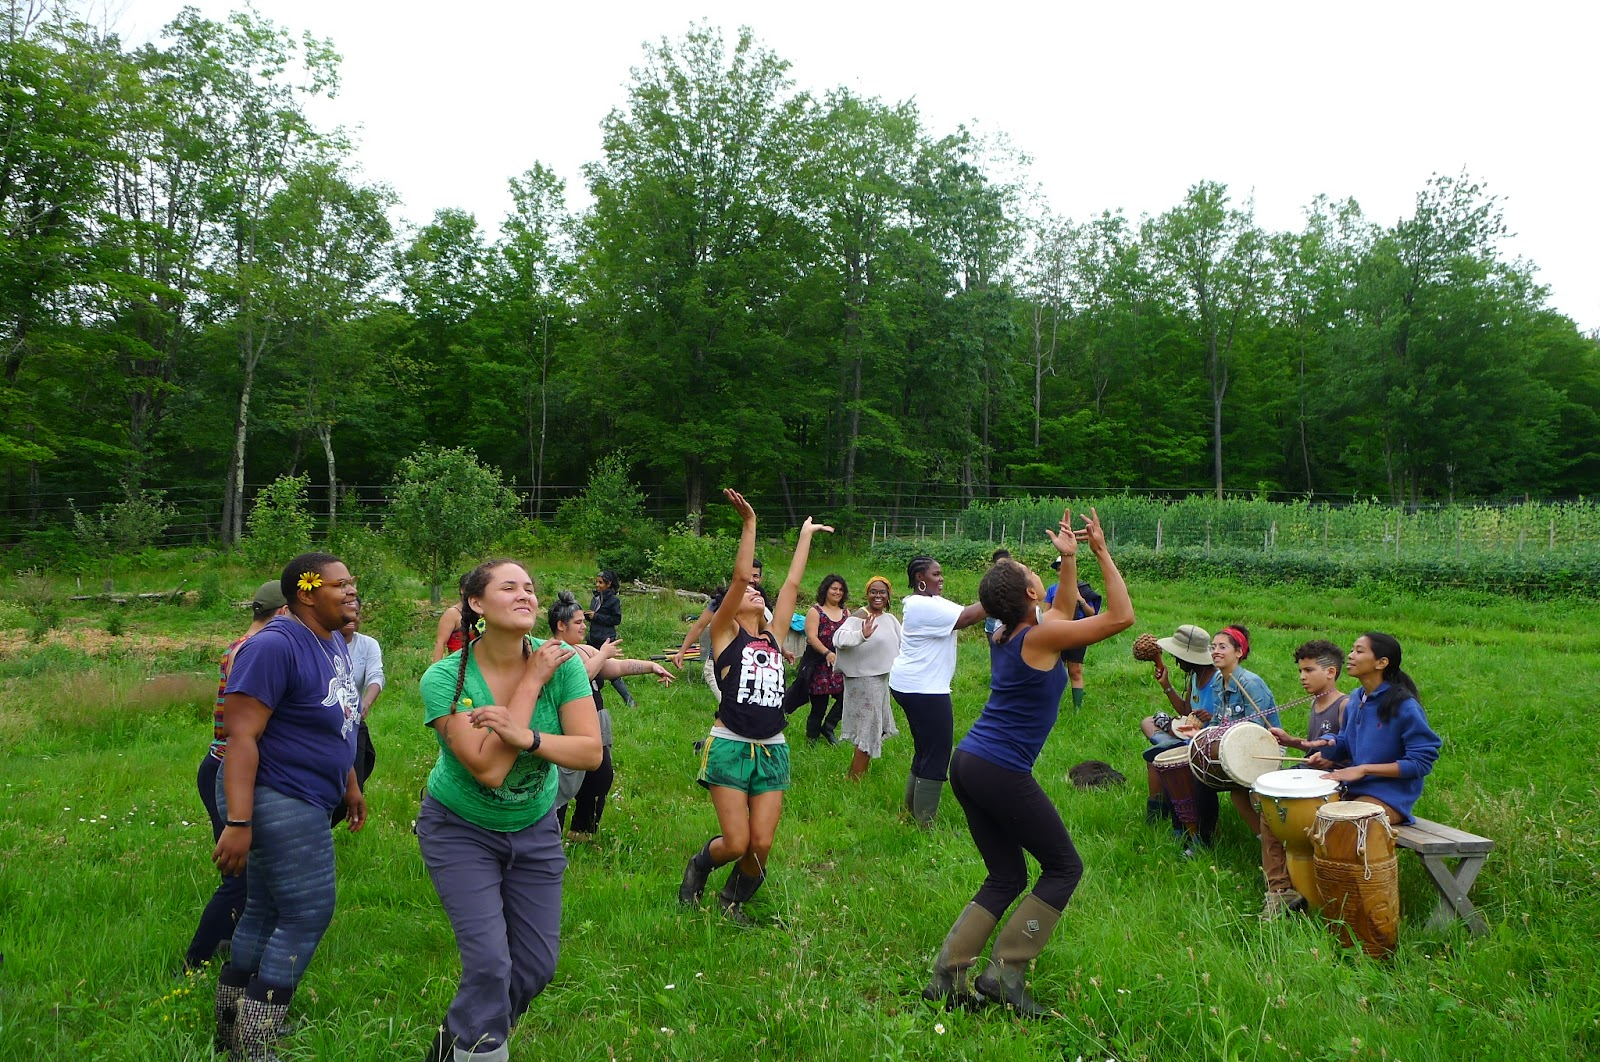 drumming and dancing in orchard 2.JPG